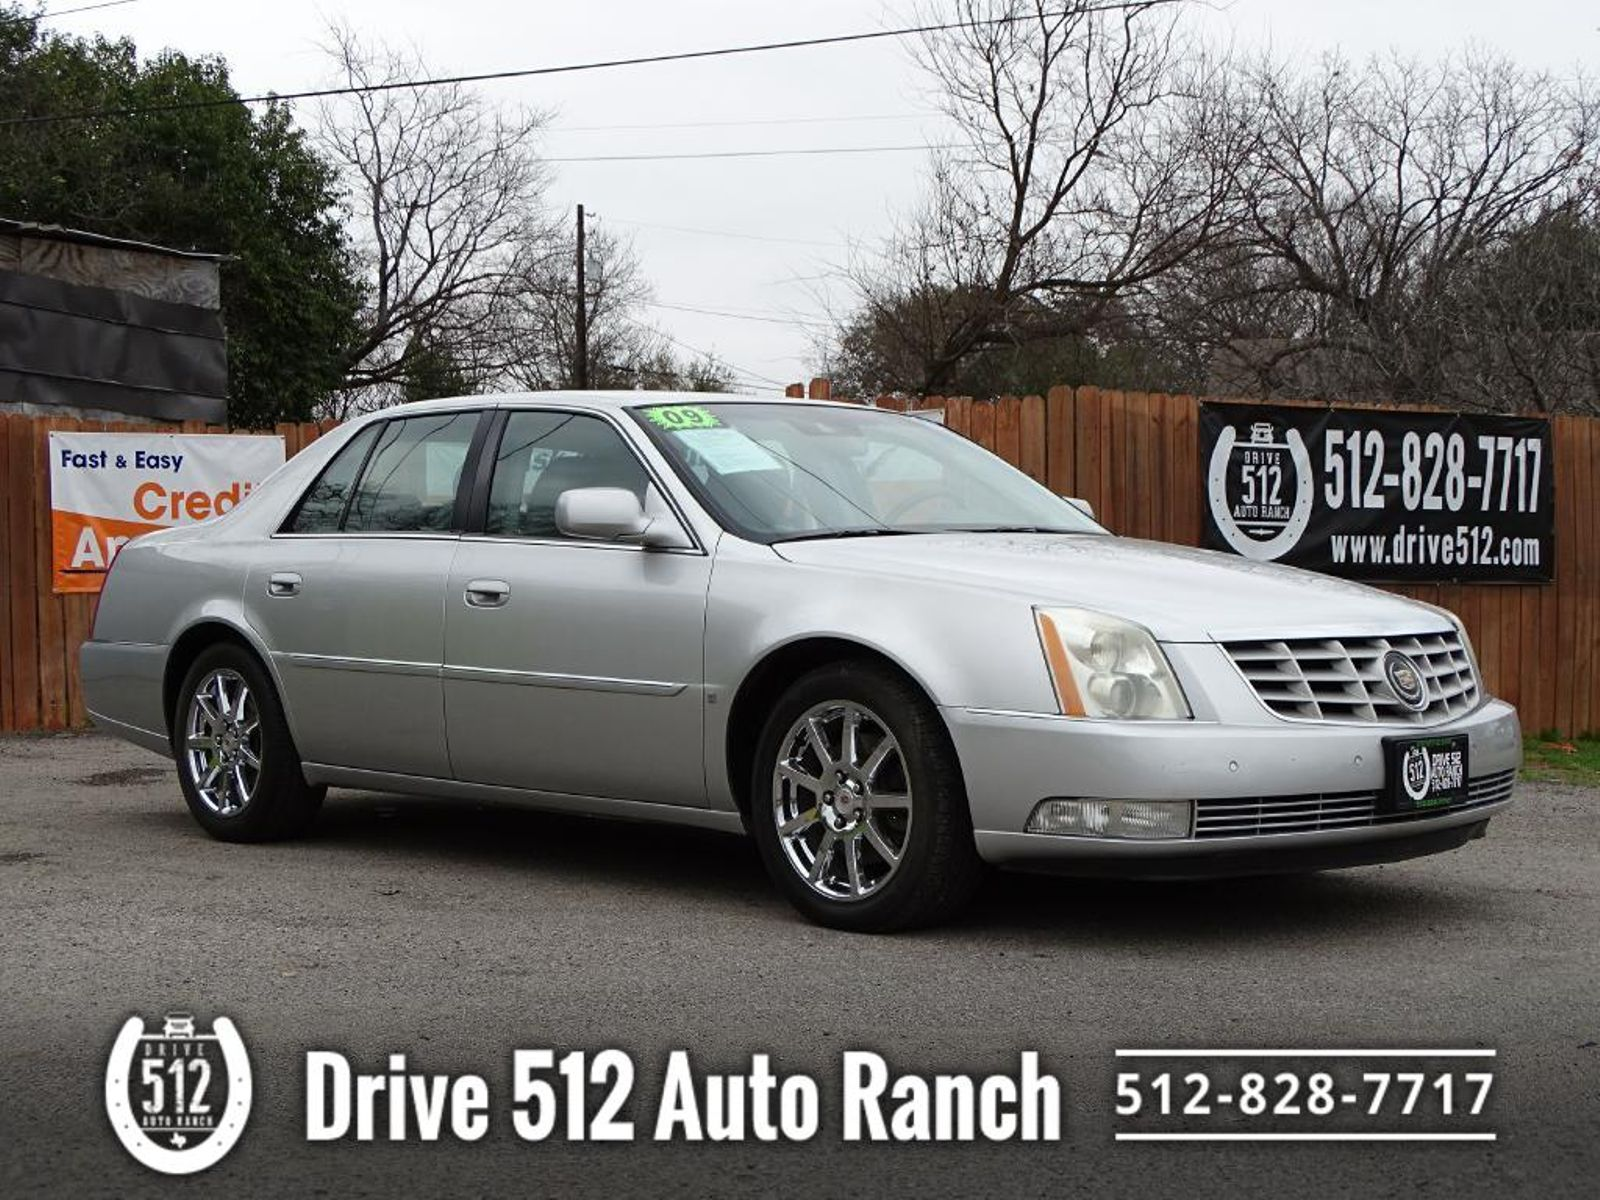 on black online cadillac chicago view il auto certificate sale auctions en rear dts copart in lot salvage south carfinder